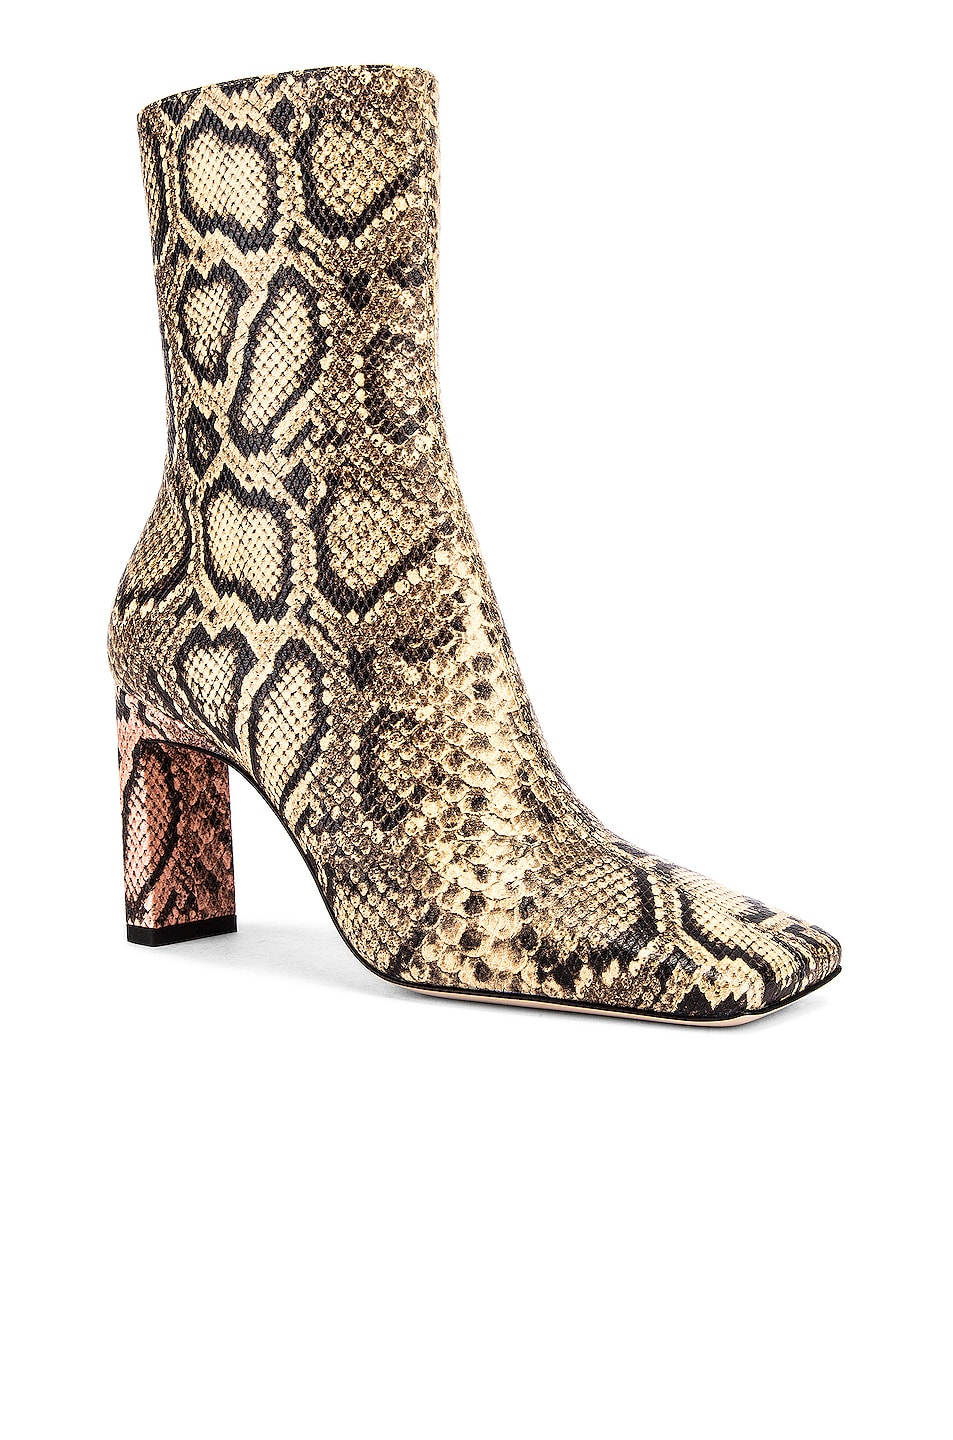 Image 2 of Wandler Isa Boots in Mustard & Python